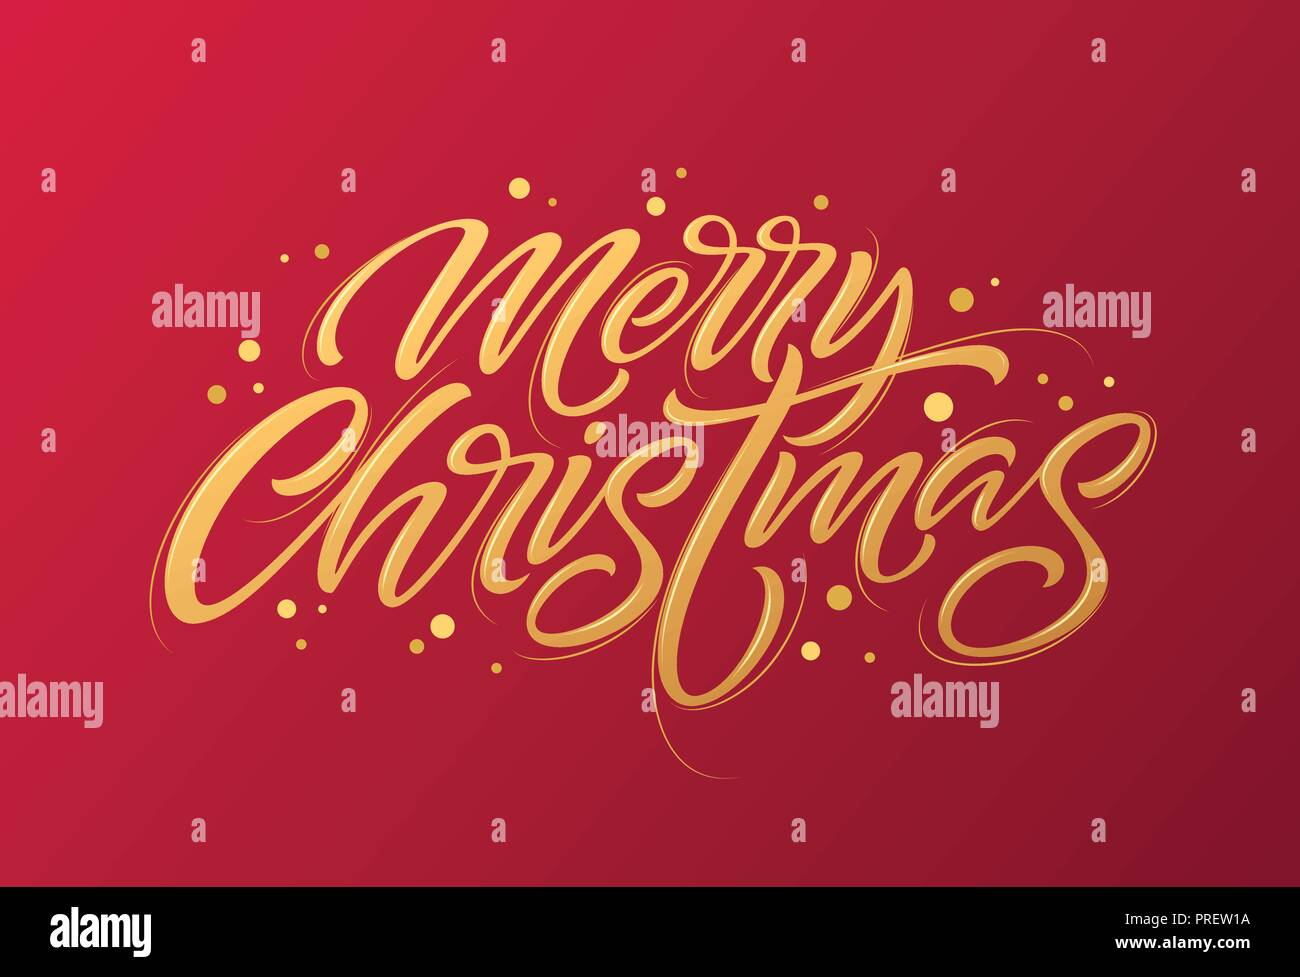 golden text on dark red background merry christmas and happy new year lettering for invitation and greeting card prints and posters